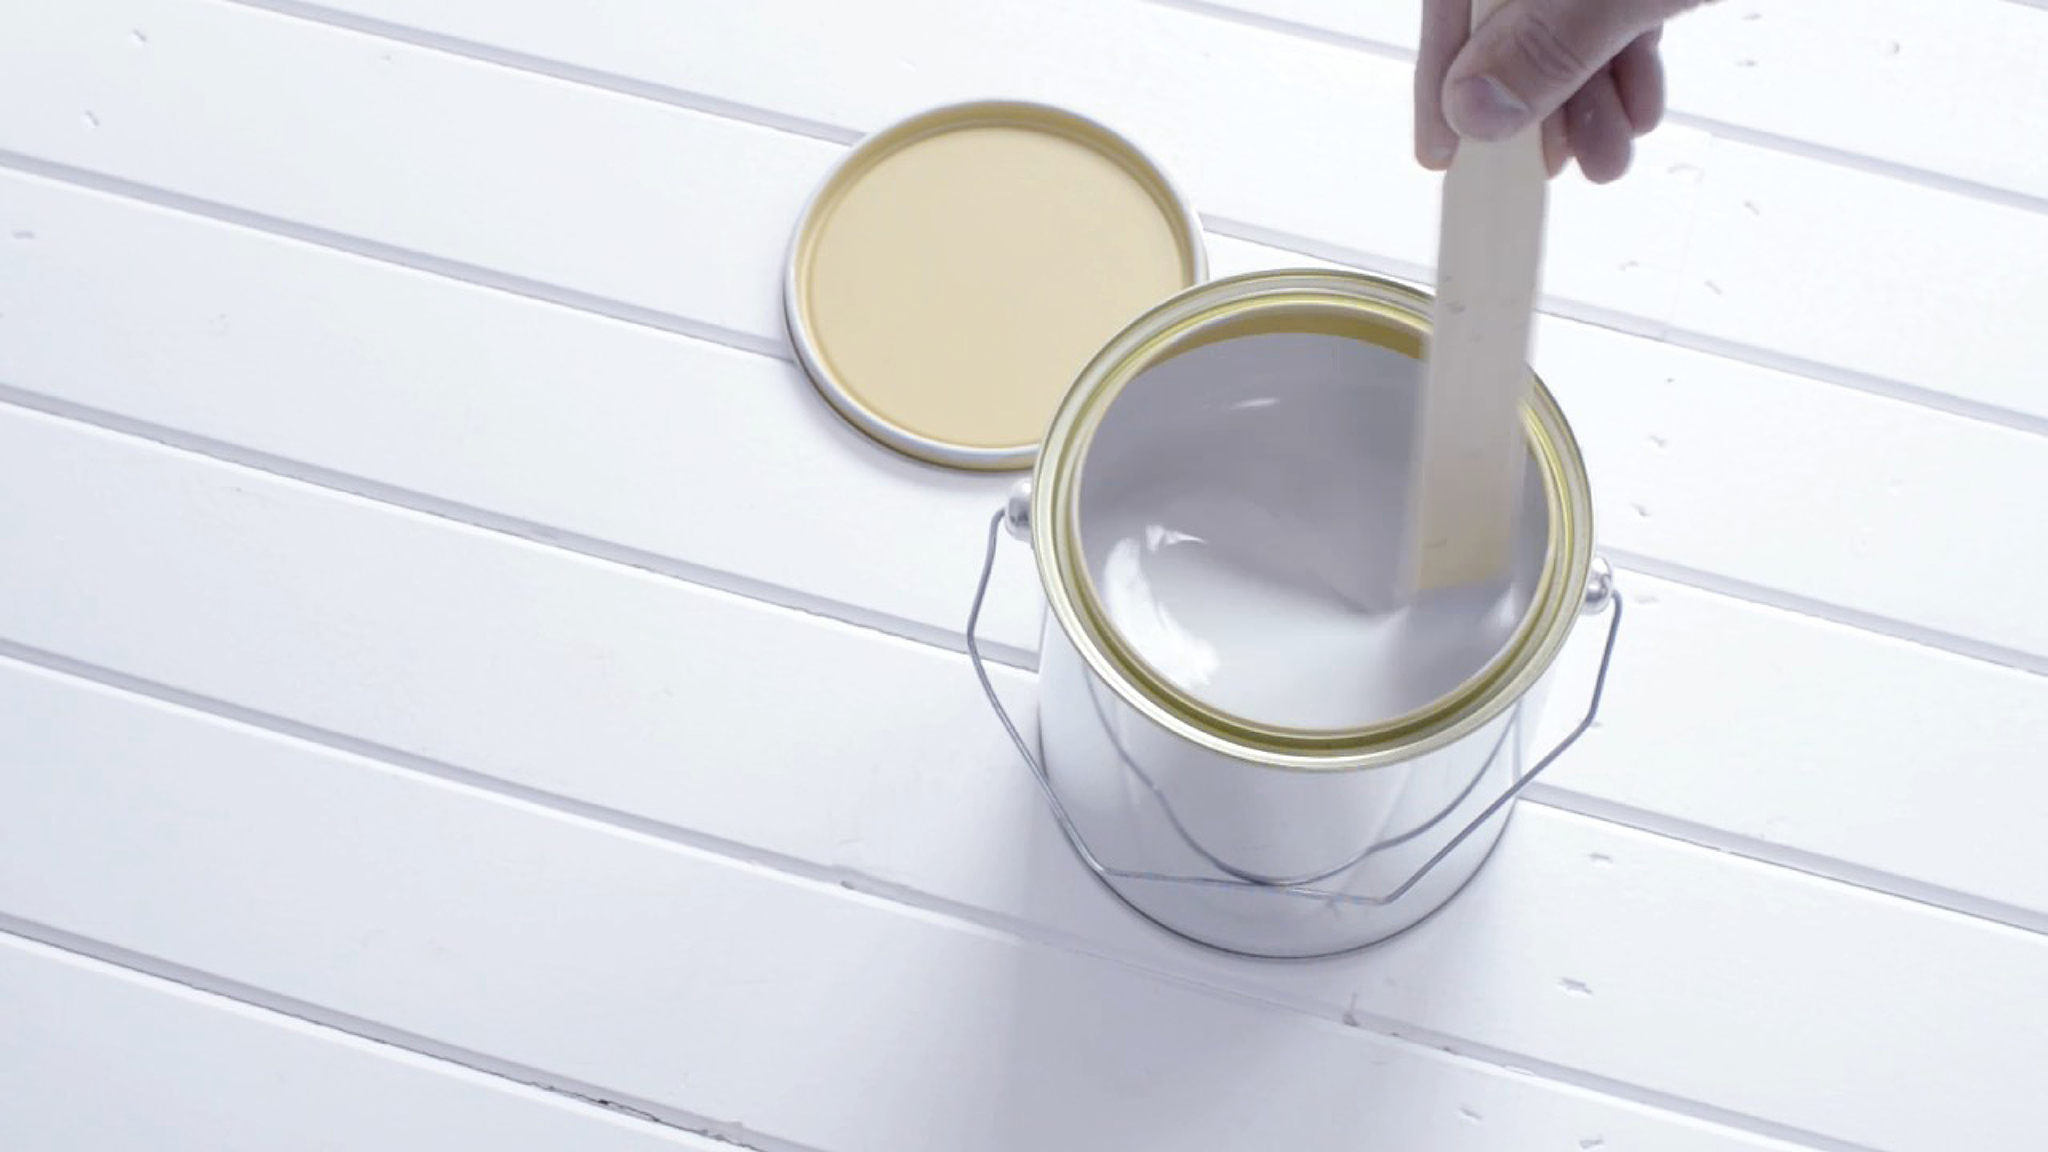 Mixing your paint before applying it will ensure a consistent colour and finish.